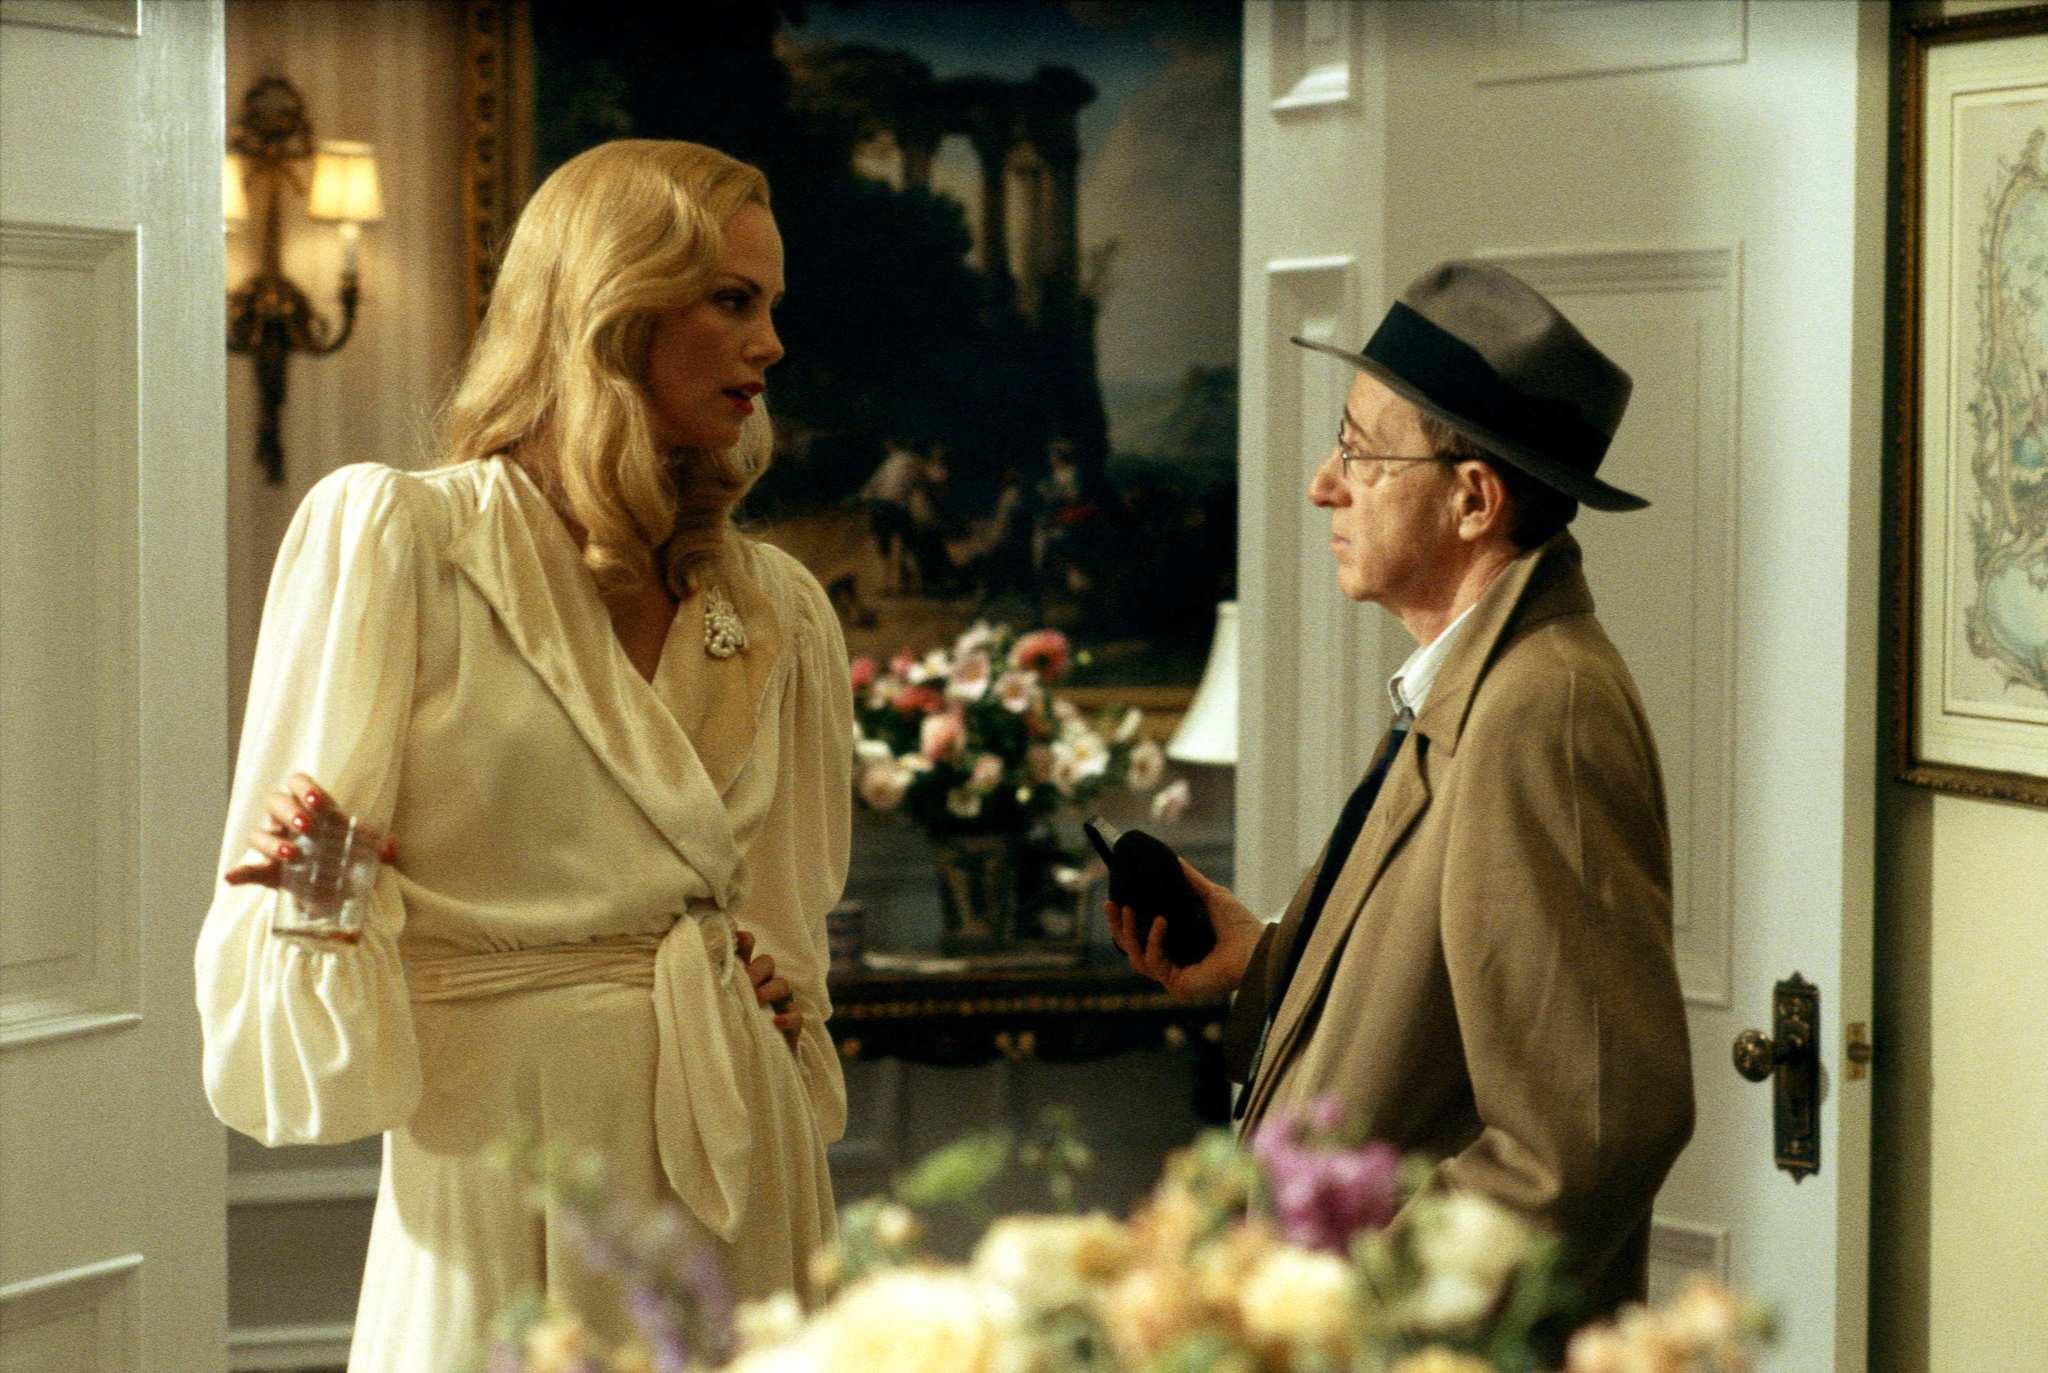 Woody Allen and Charlize Theron in The Curse of the Jade Scorpion (2001)